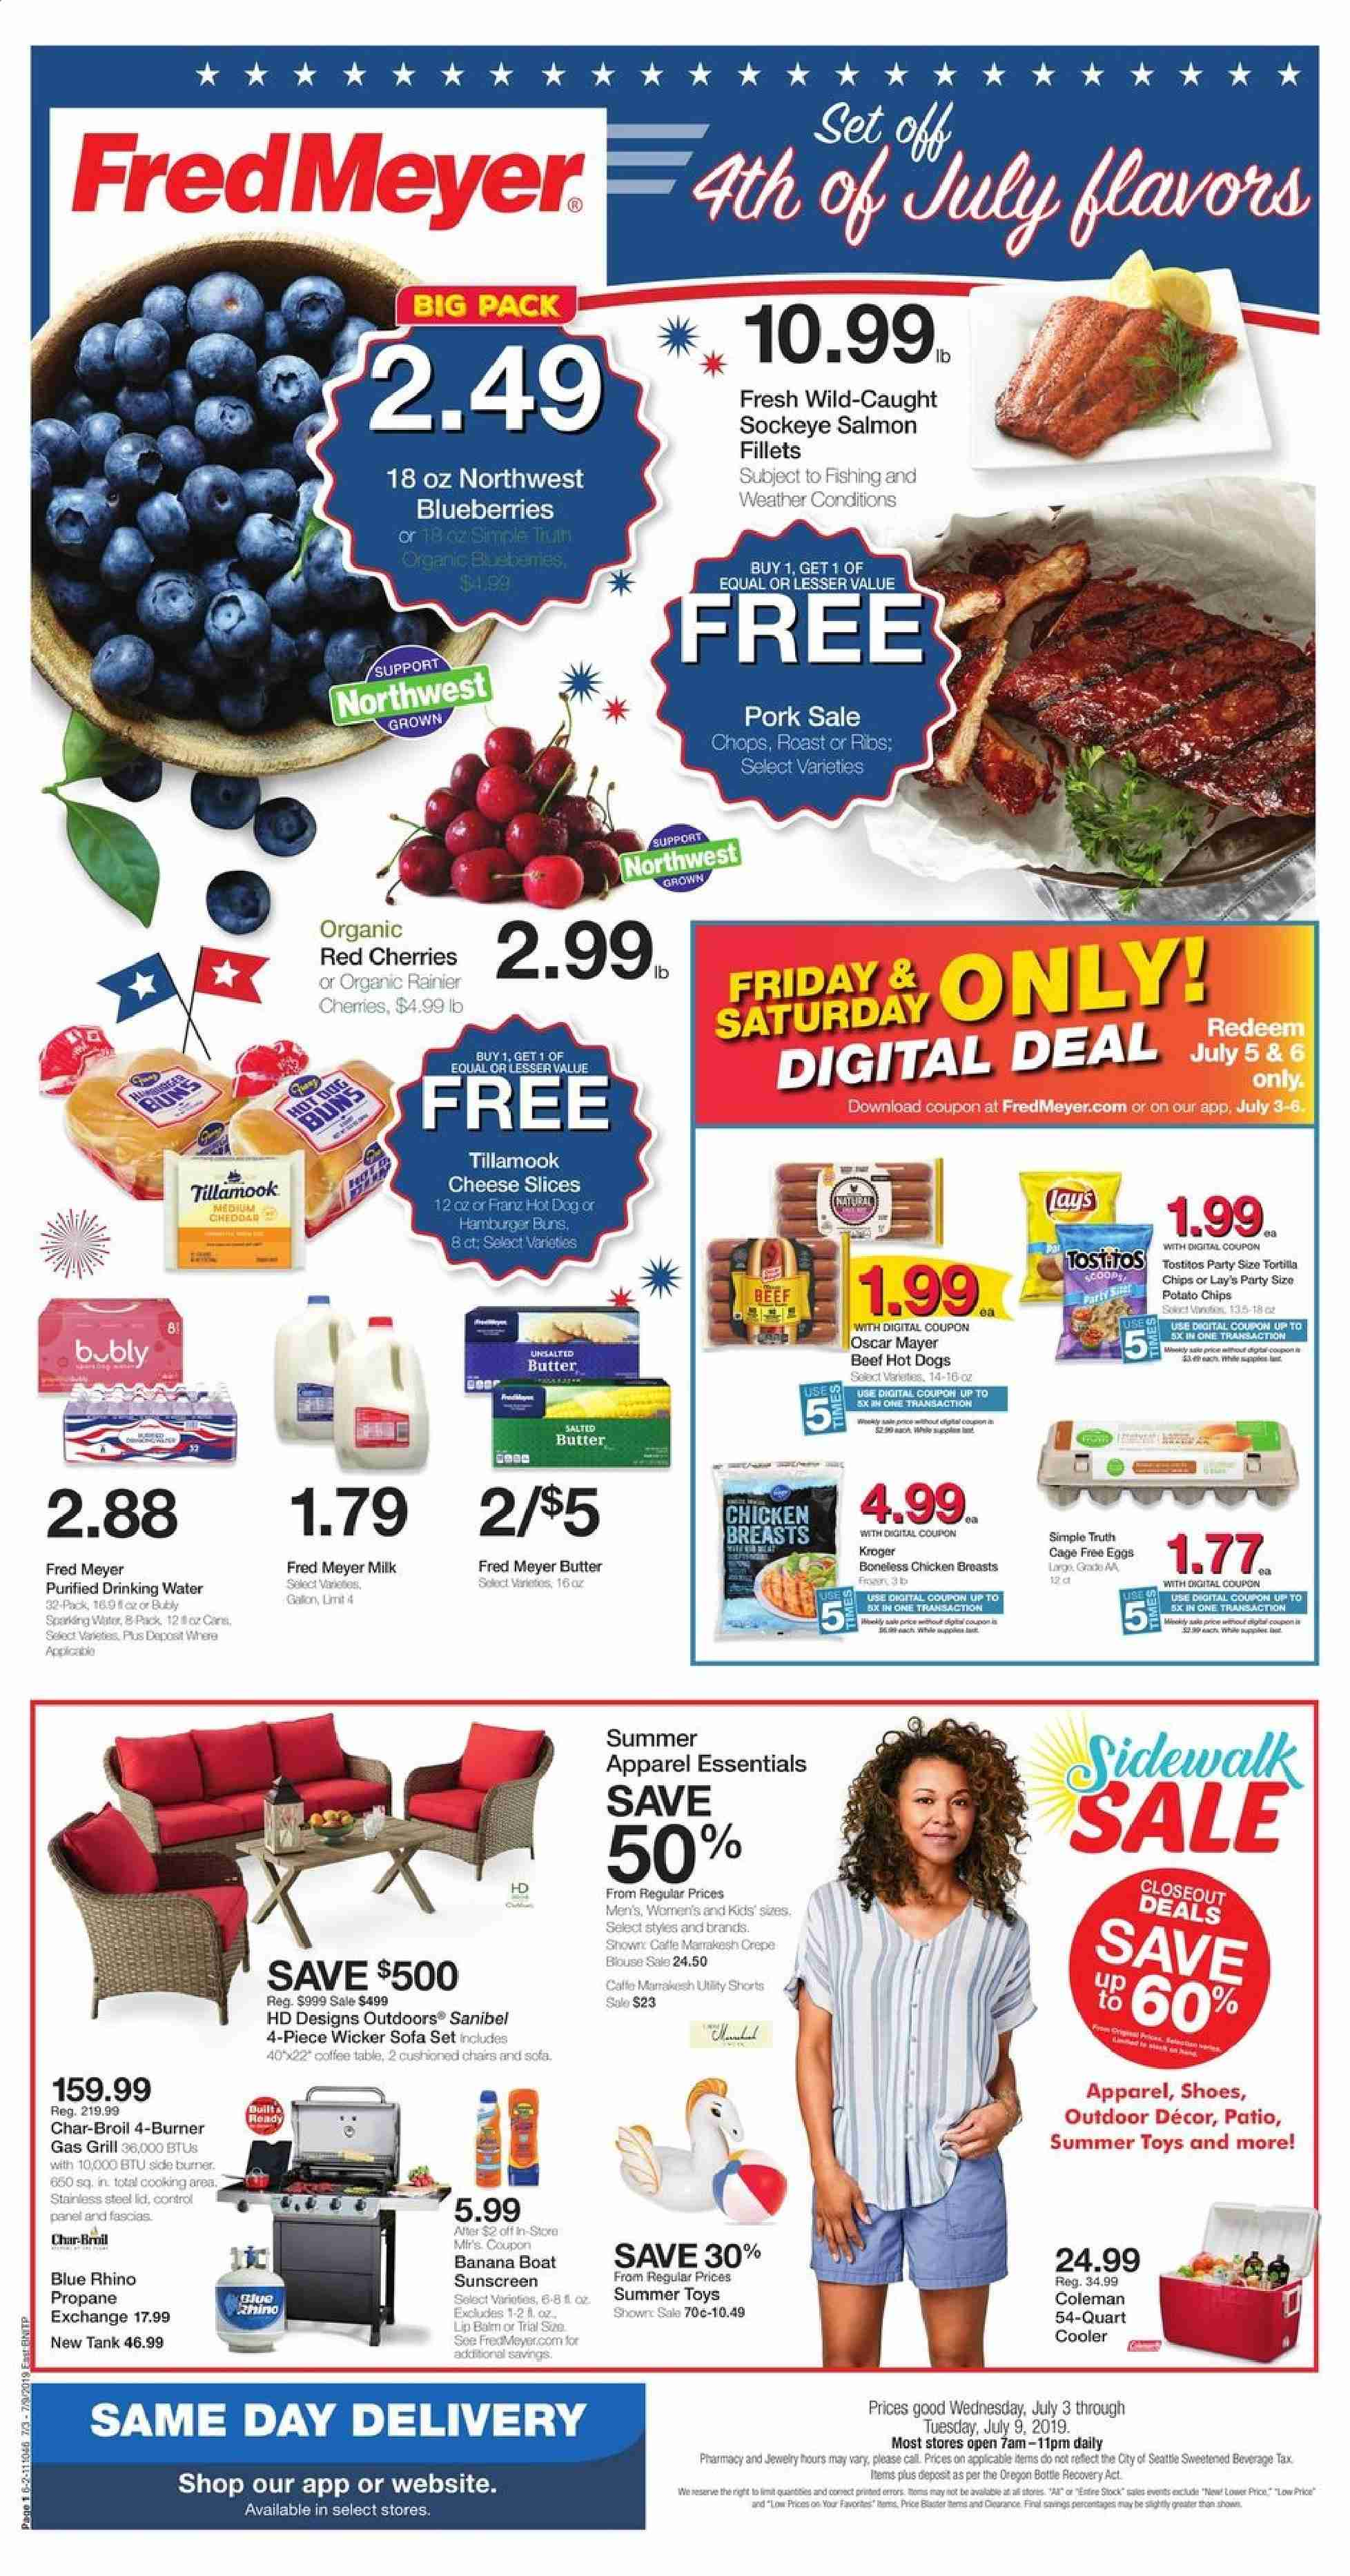 Fred Meyer Flyer - 07.03.2019 - 07.09.2019 - Sales products - blueberries, cherries, salmon, hot dog, cheddar, cheese, milk, eggs, butter, tortilla chips, chips, Lay's, water, chicken, chicken breast, beef meat, hamburger, pork meat, lip balm, Cars, toys, ribs, hůll, Rhino, essentials, hot dogs. Page 1.